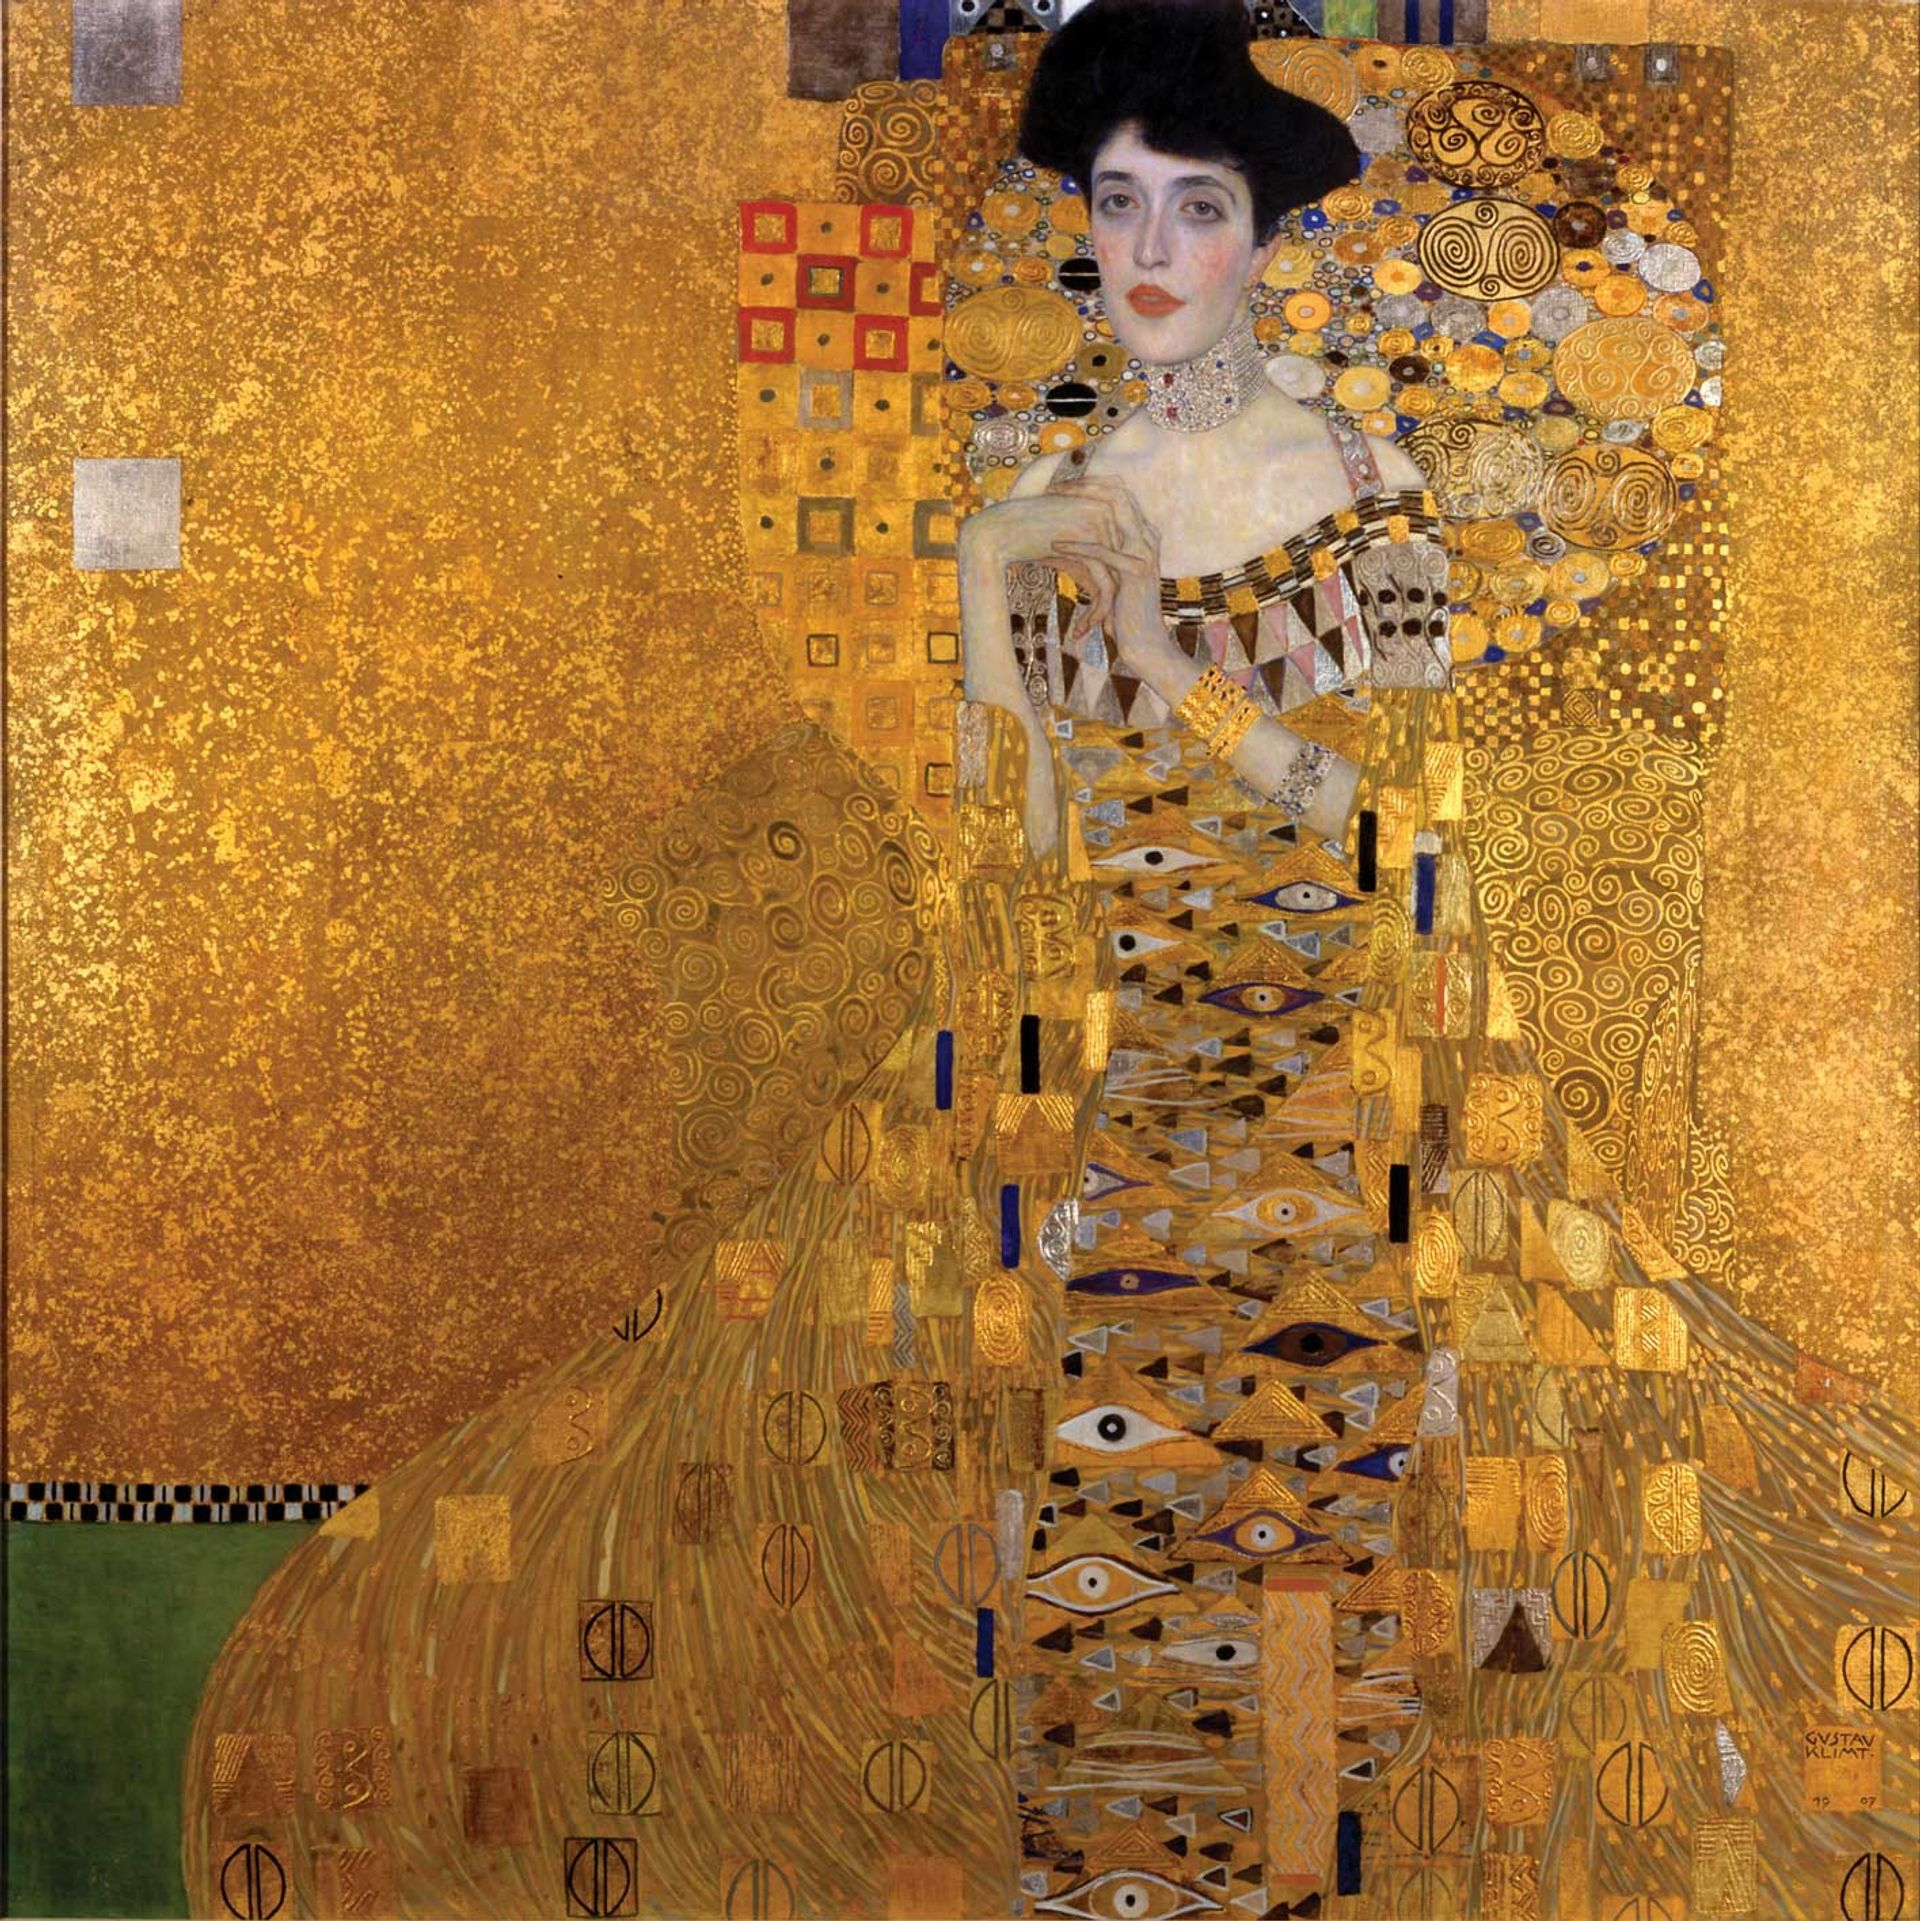 Maria Altmann is seeking six works by Gustav Klimt looted by the Nazis, including Portrait of Adele Bloch-Bauer I (1907) Photo: Neue Galerie New York